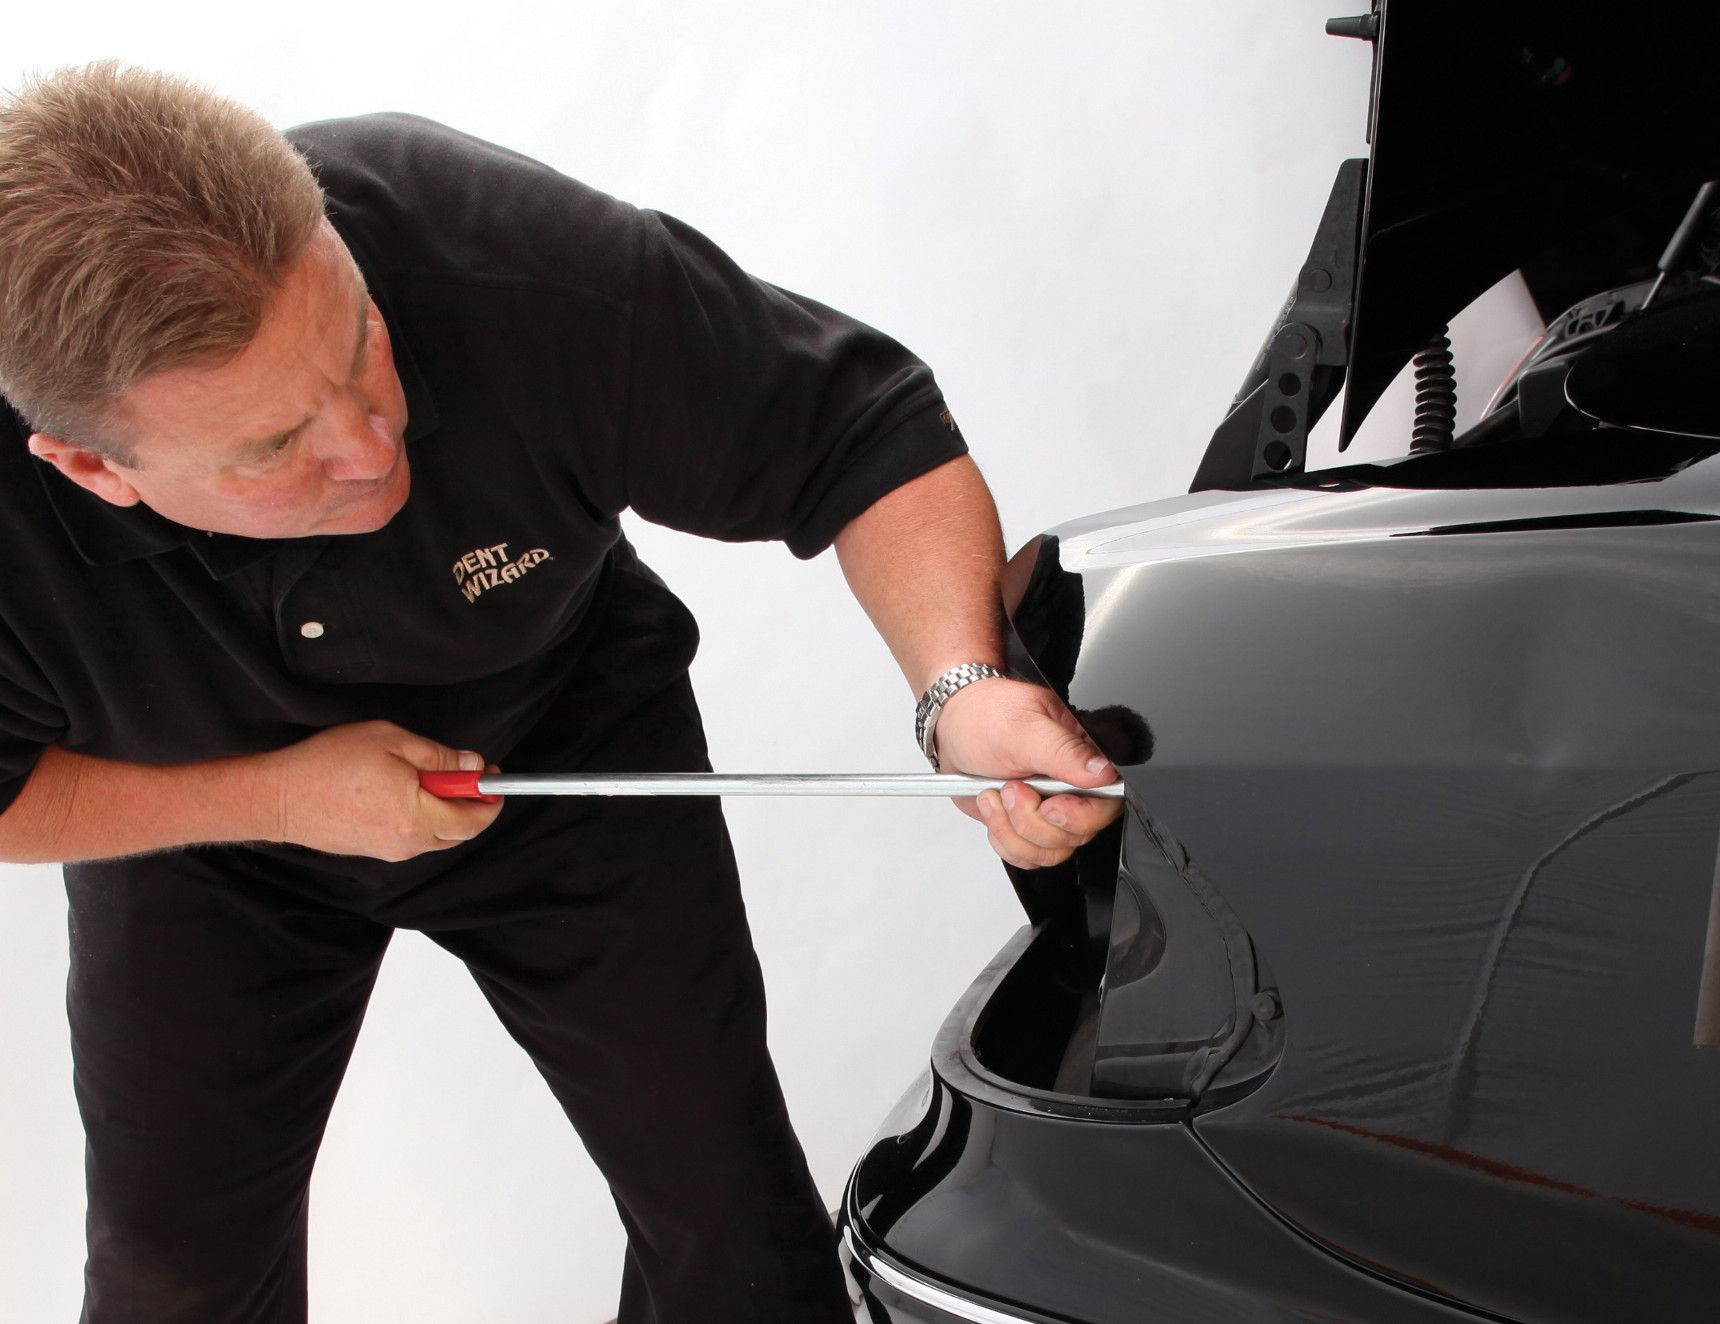 Leaders in Smart Repairs & Paintless Dent Repair | Dent Wizard